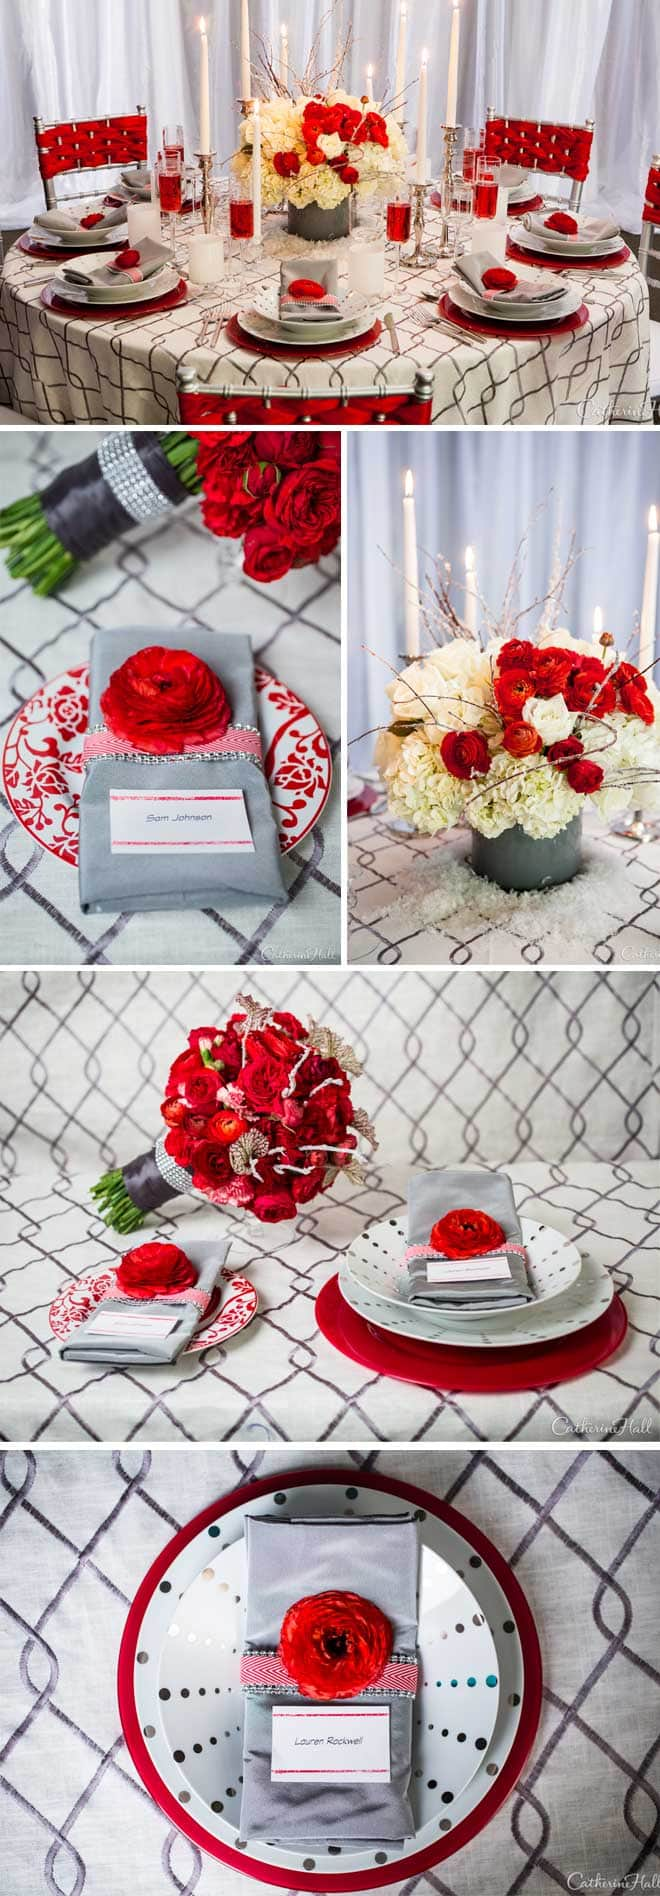 Red and White Wintry Styled Tablescape